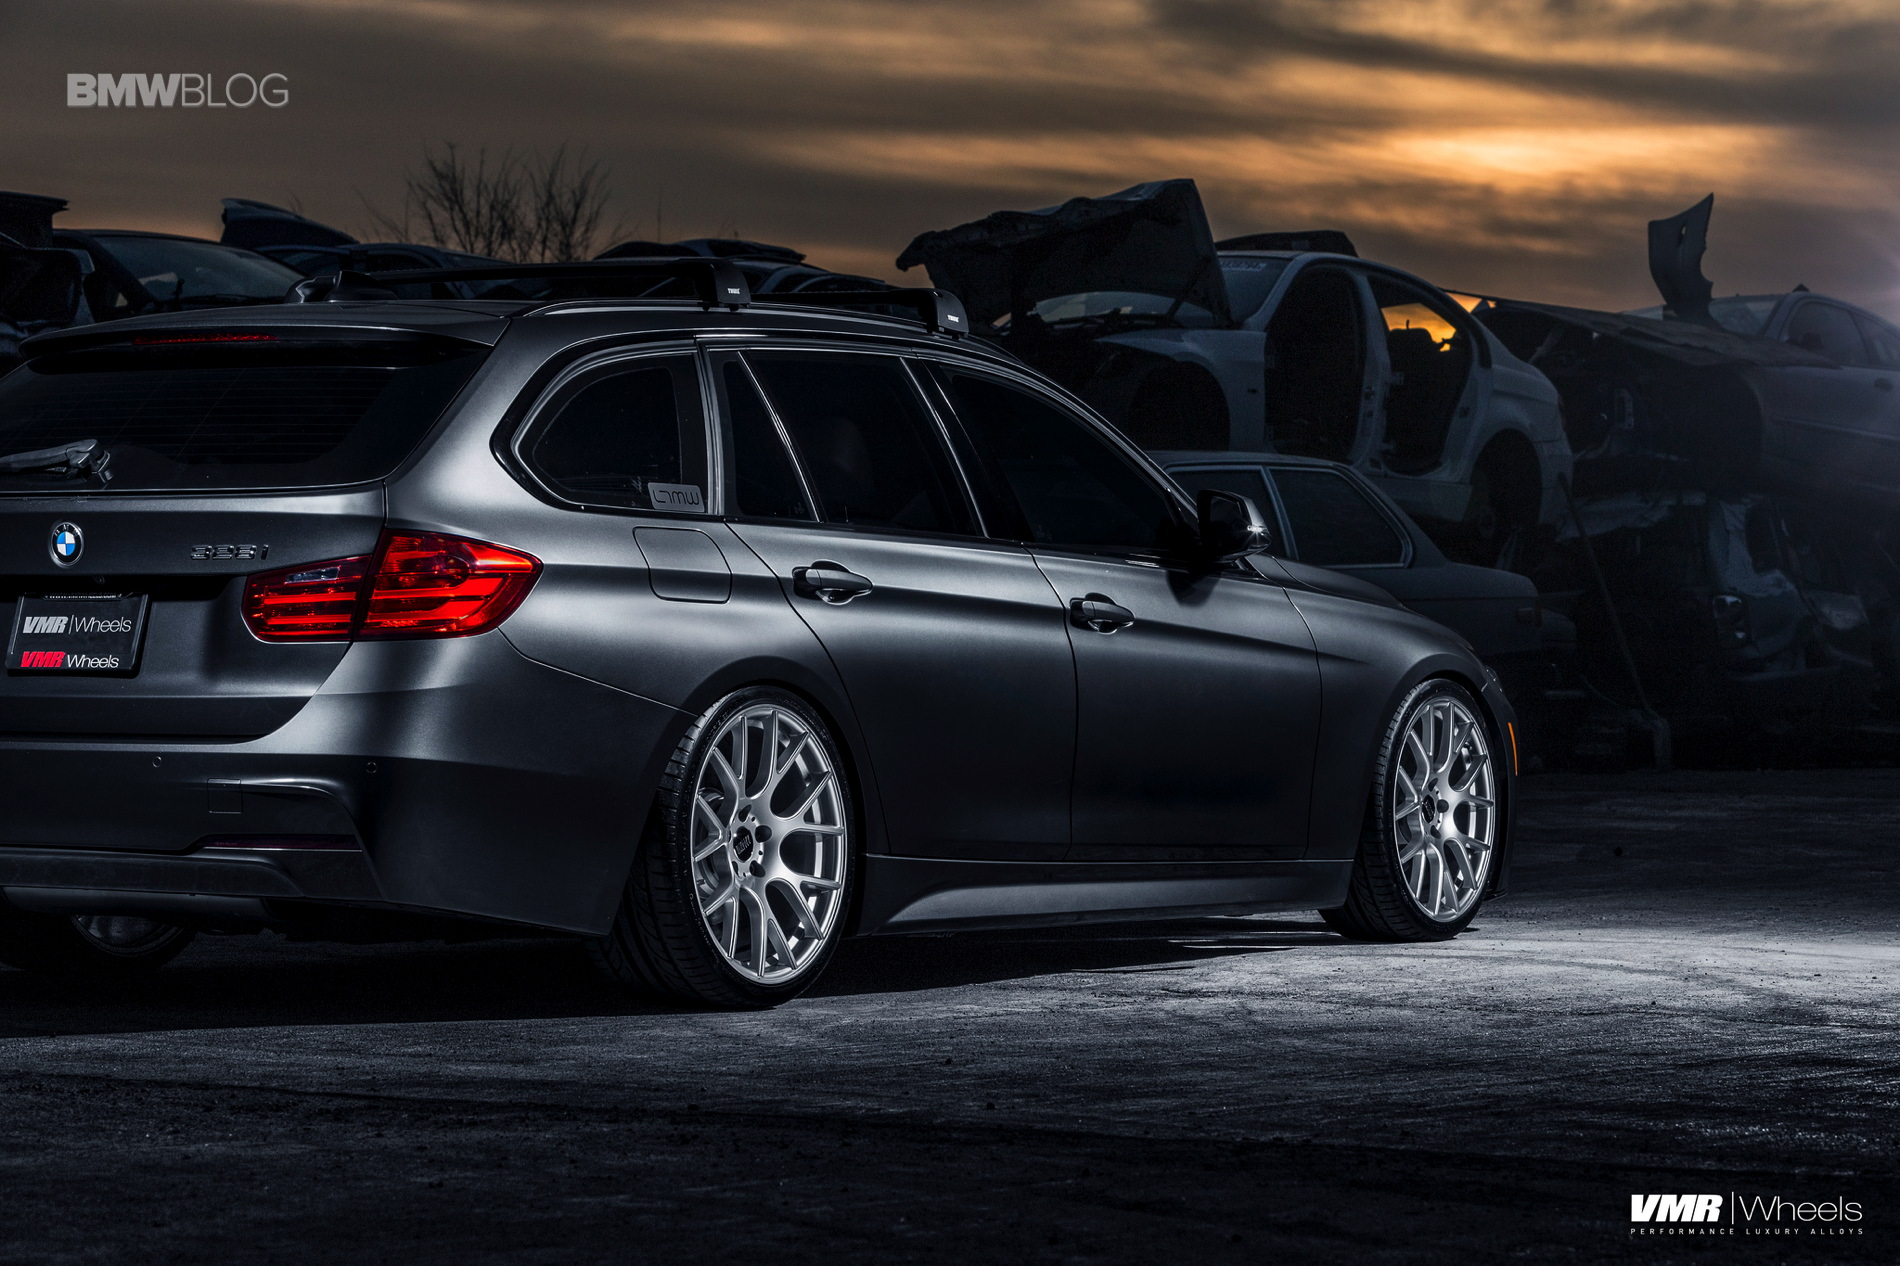 Rolls Royce Models >> BMW F31 Sports Wagon gets some visual upgrades and custom wheels